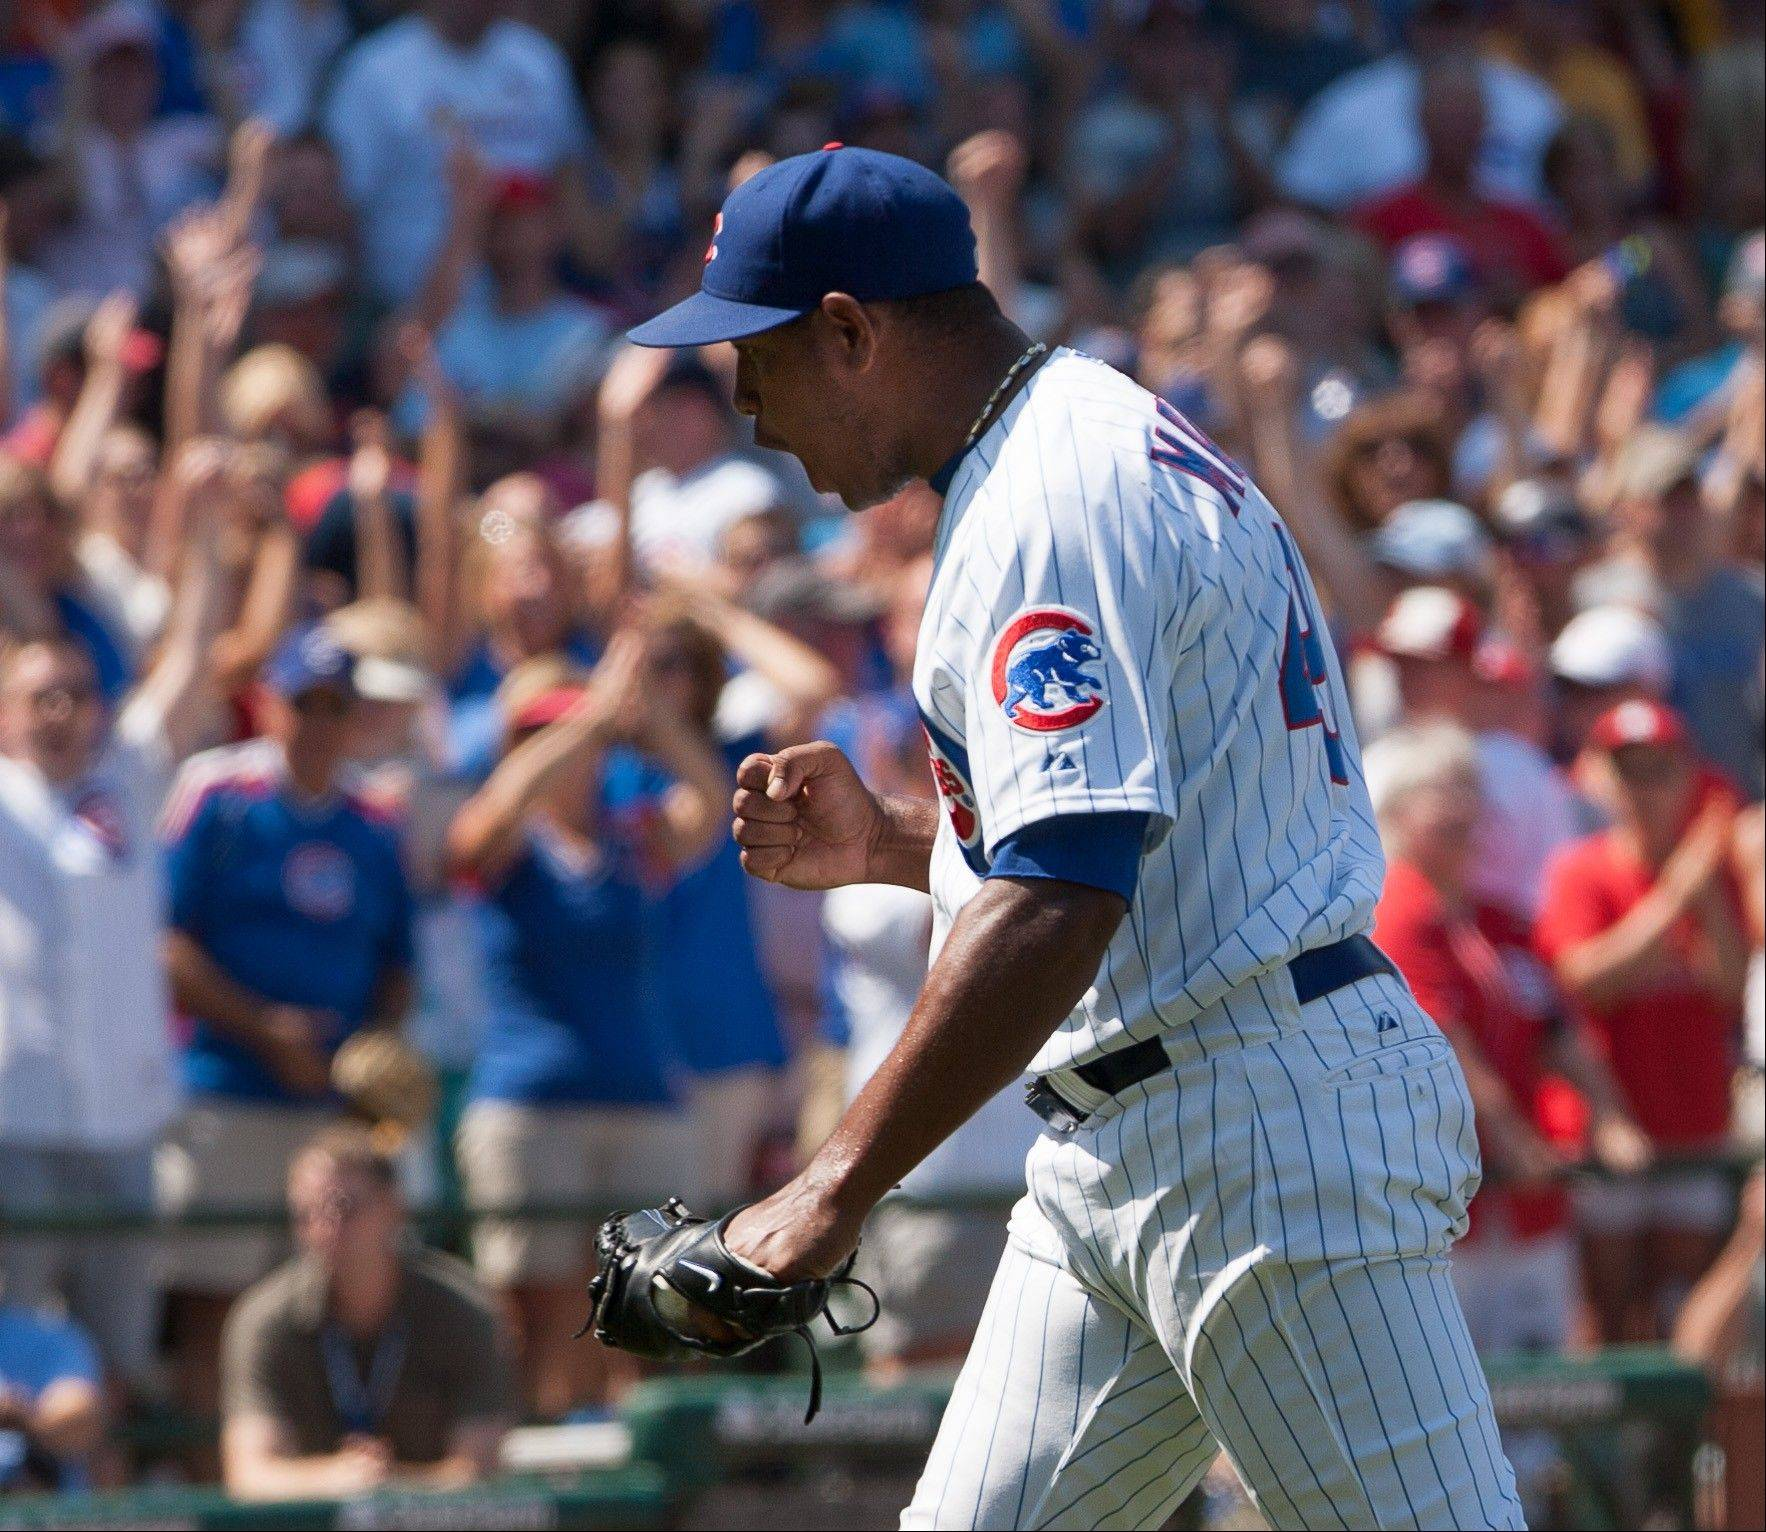 After a 22-pitch ninth inning, Carlos Marmol notched his 12th straight save.